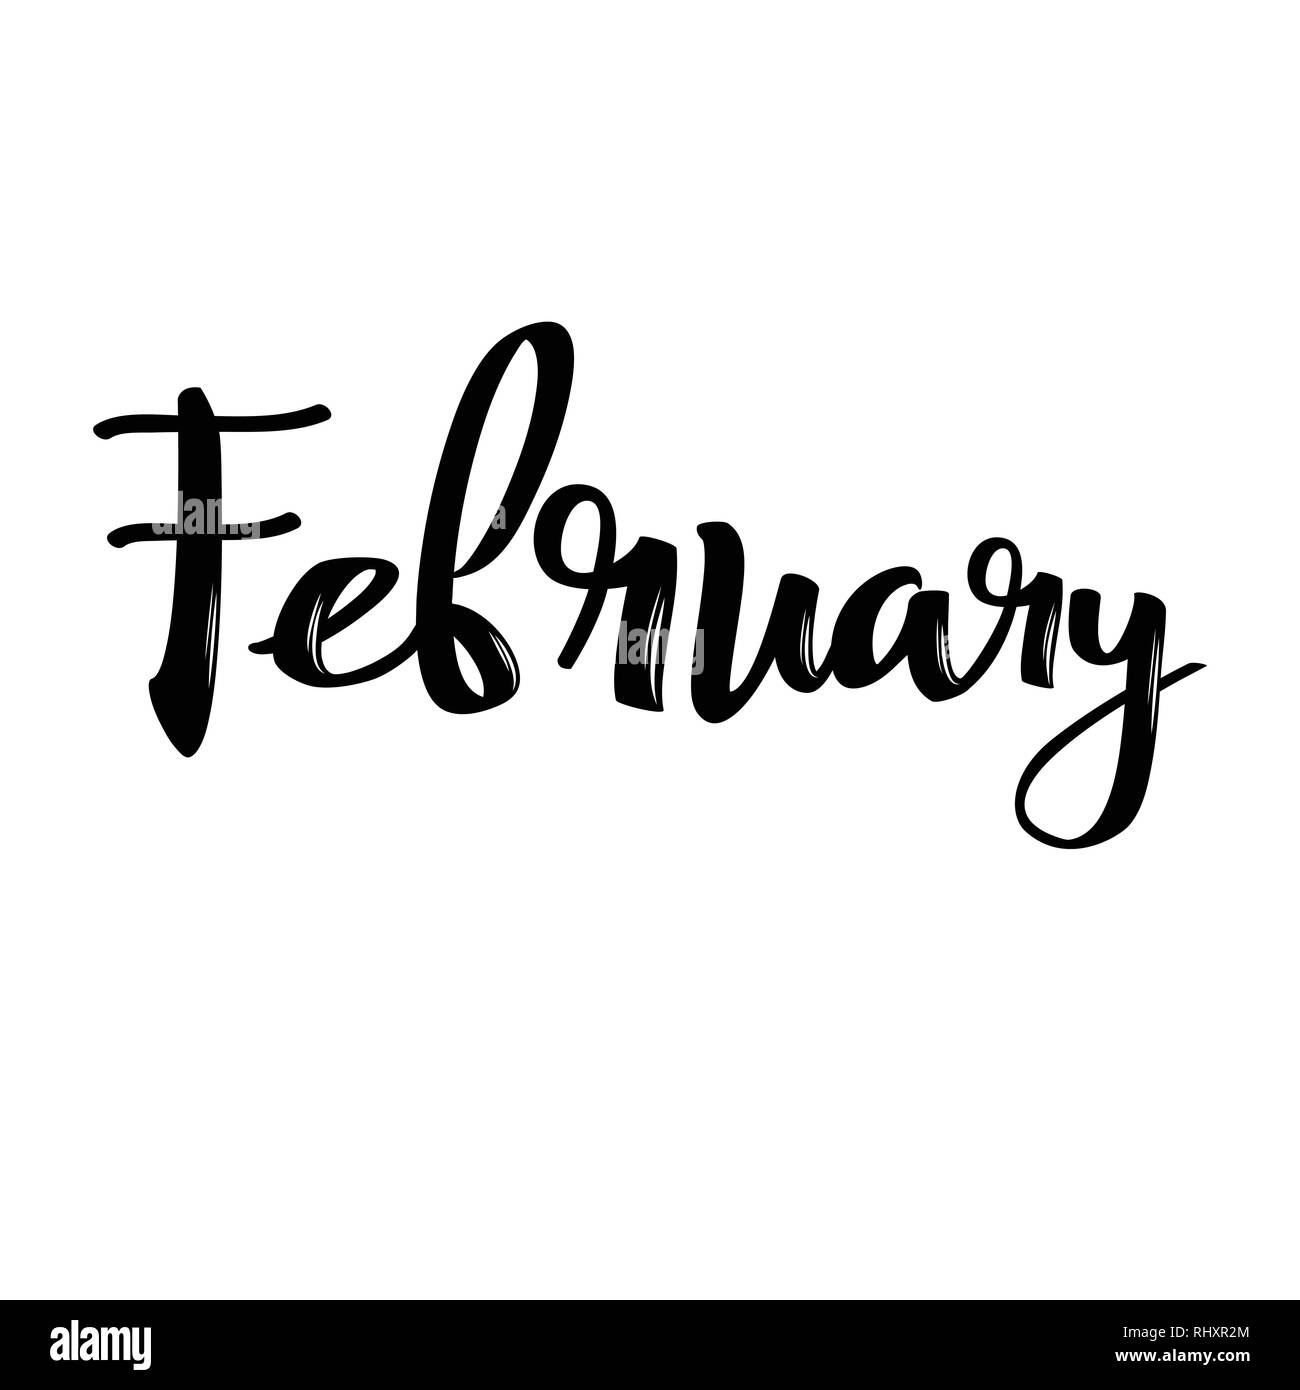 Hello February Black and White Stock Photos & Images - Alamy